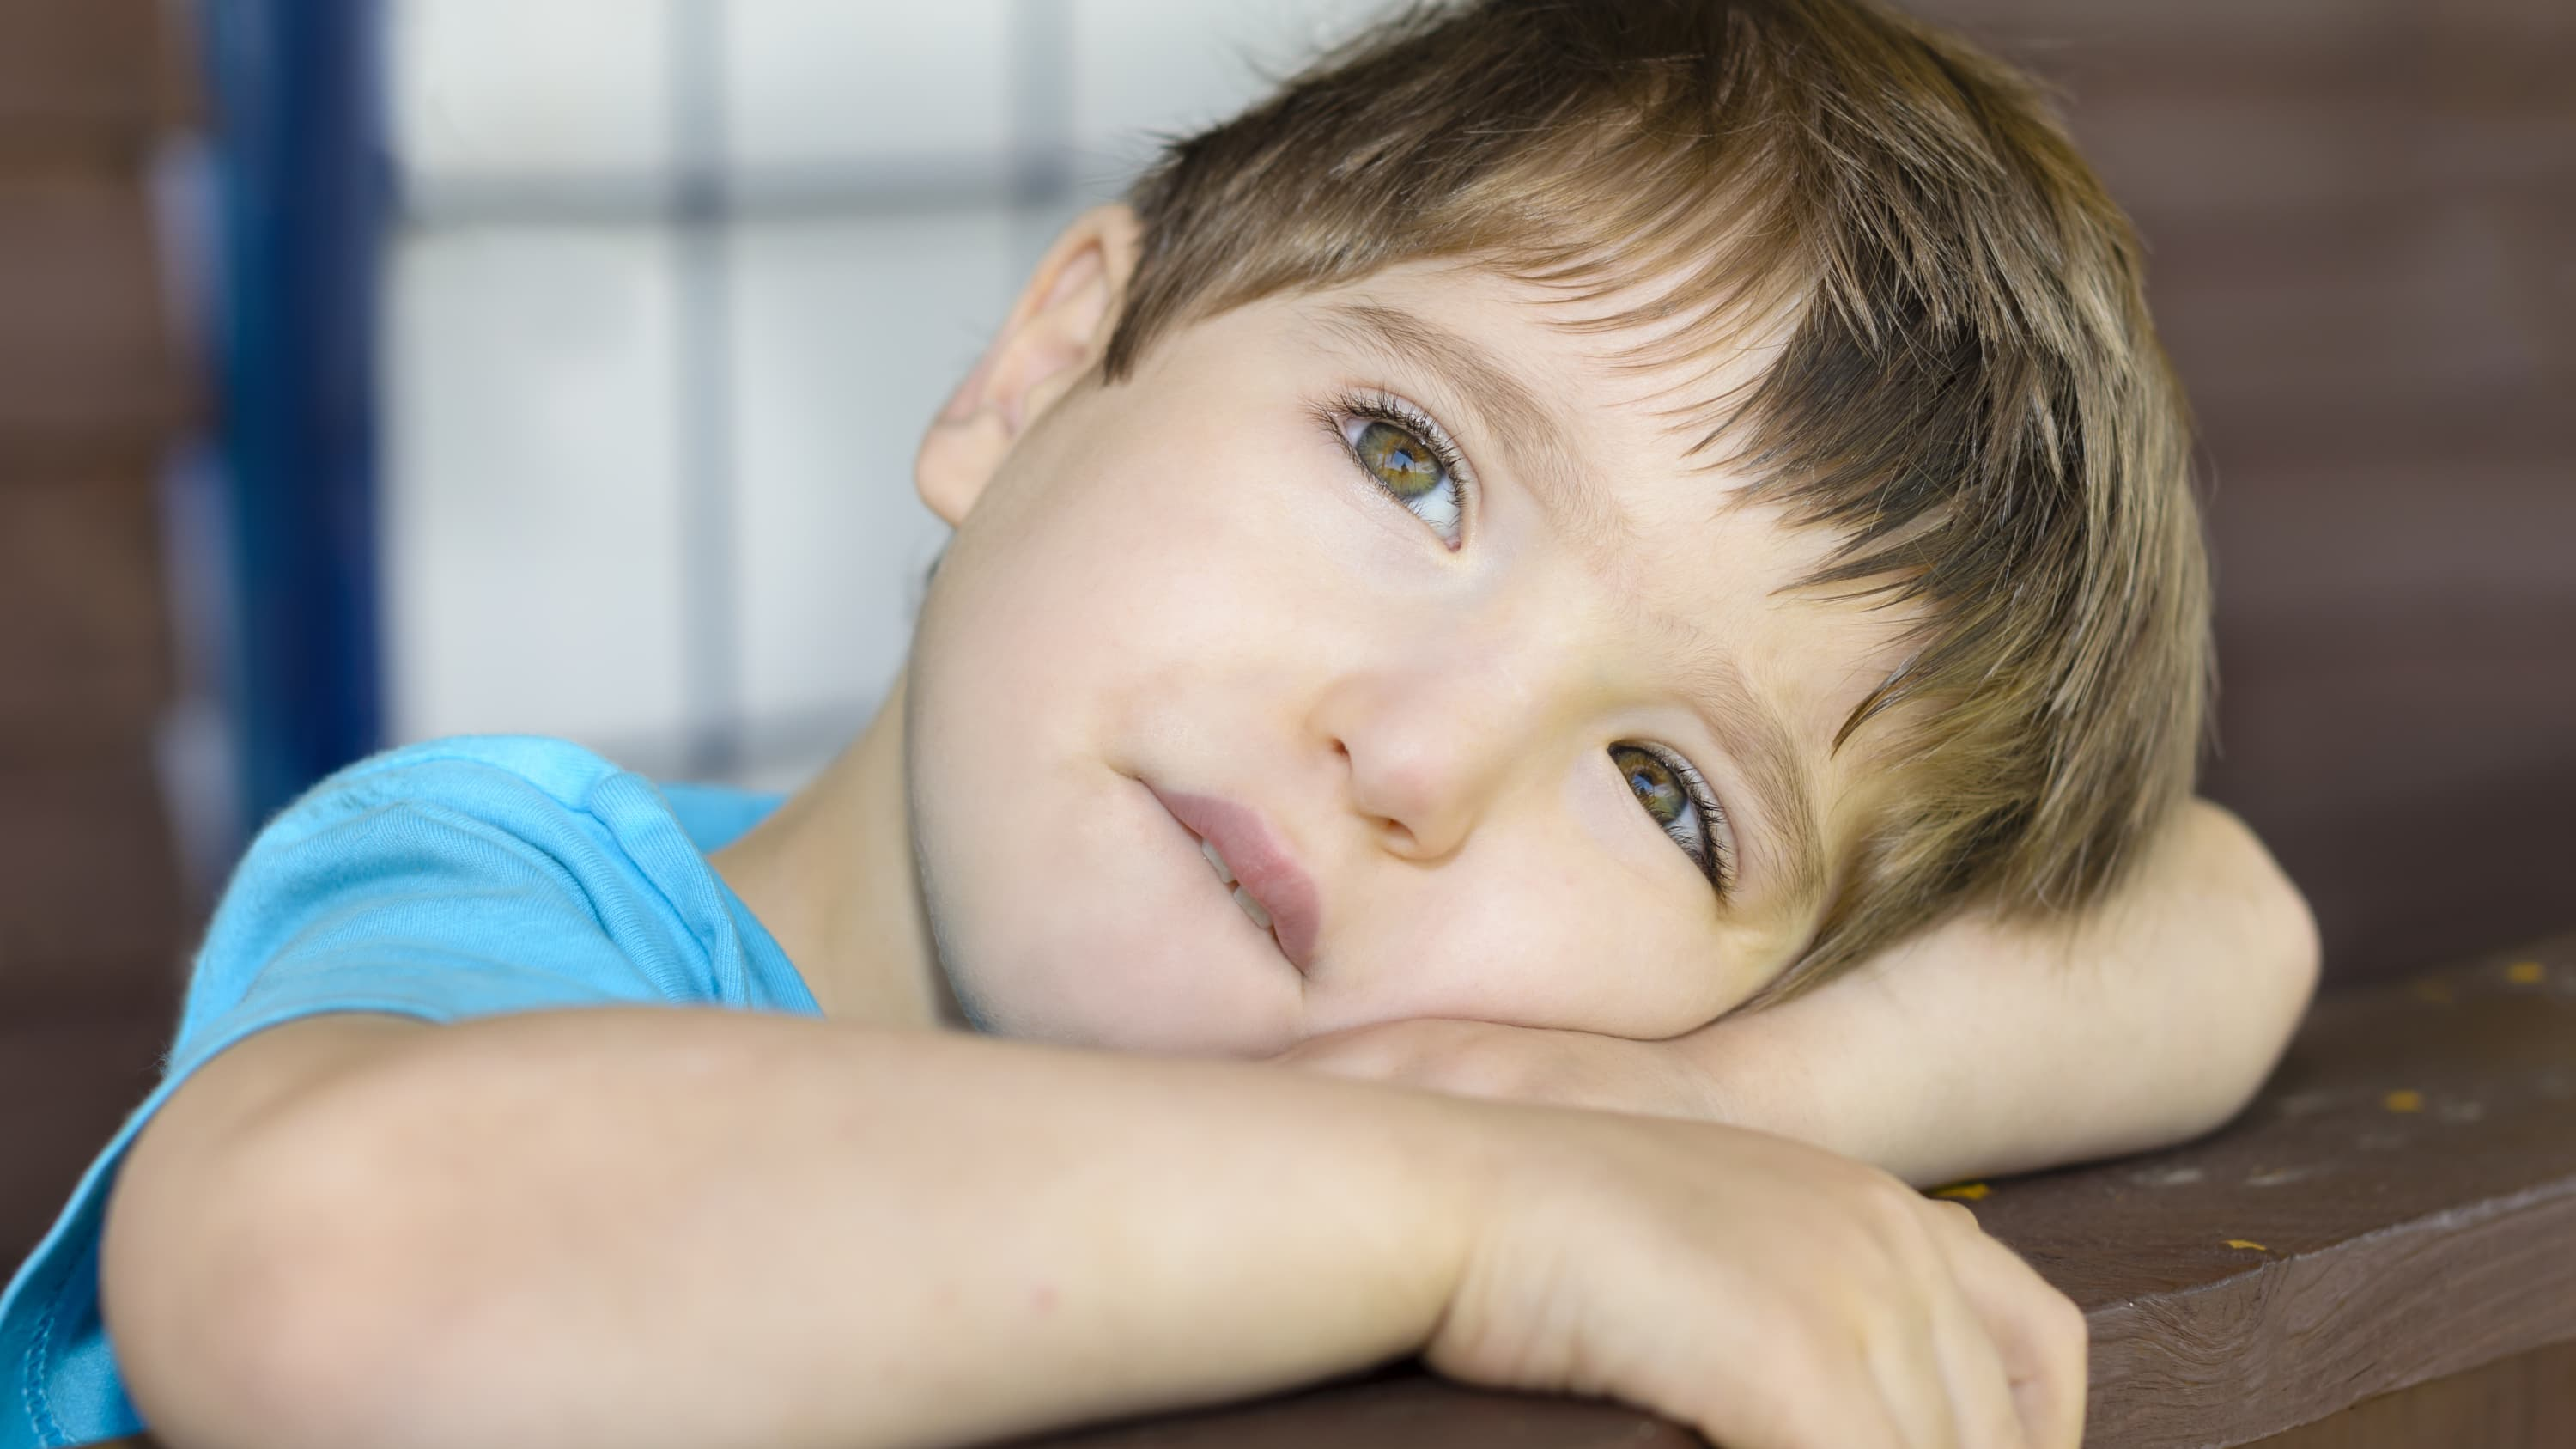 A child with a movement disorder looks off into the distance.